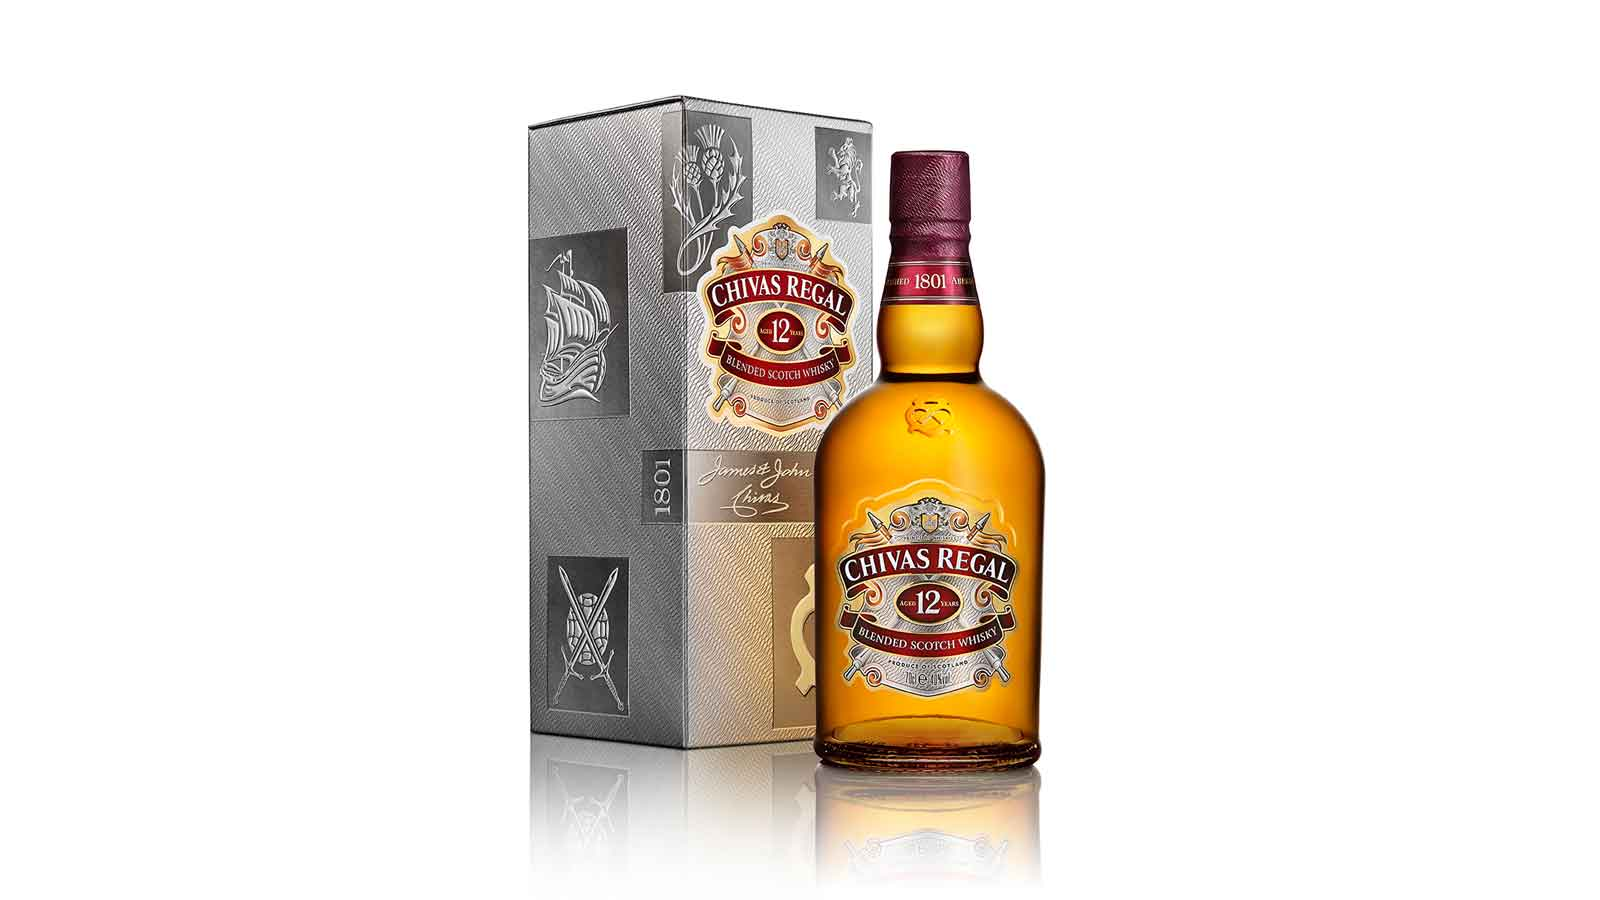 The reinvention of an icon: contemporary new look for Chivas Regal 12